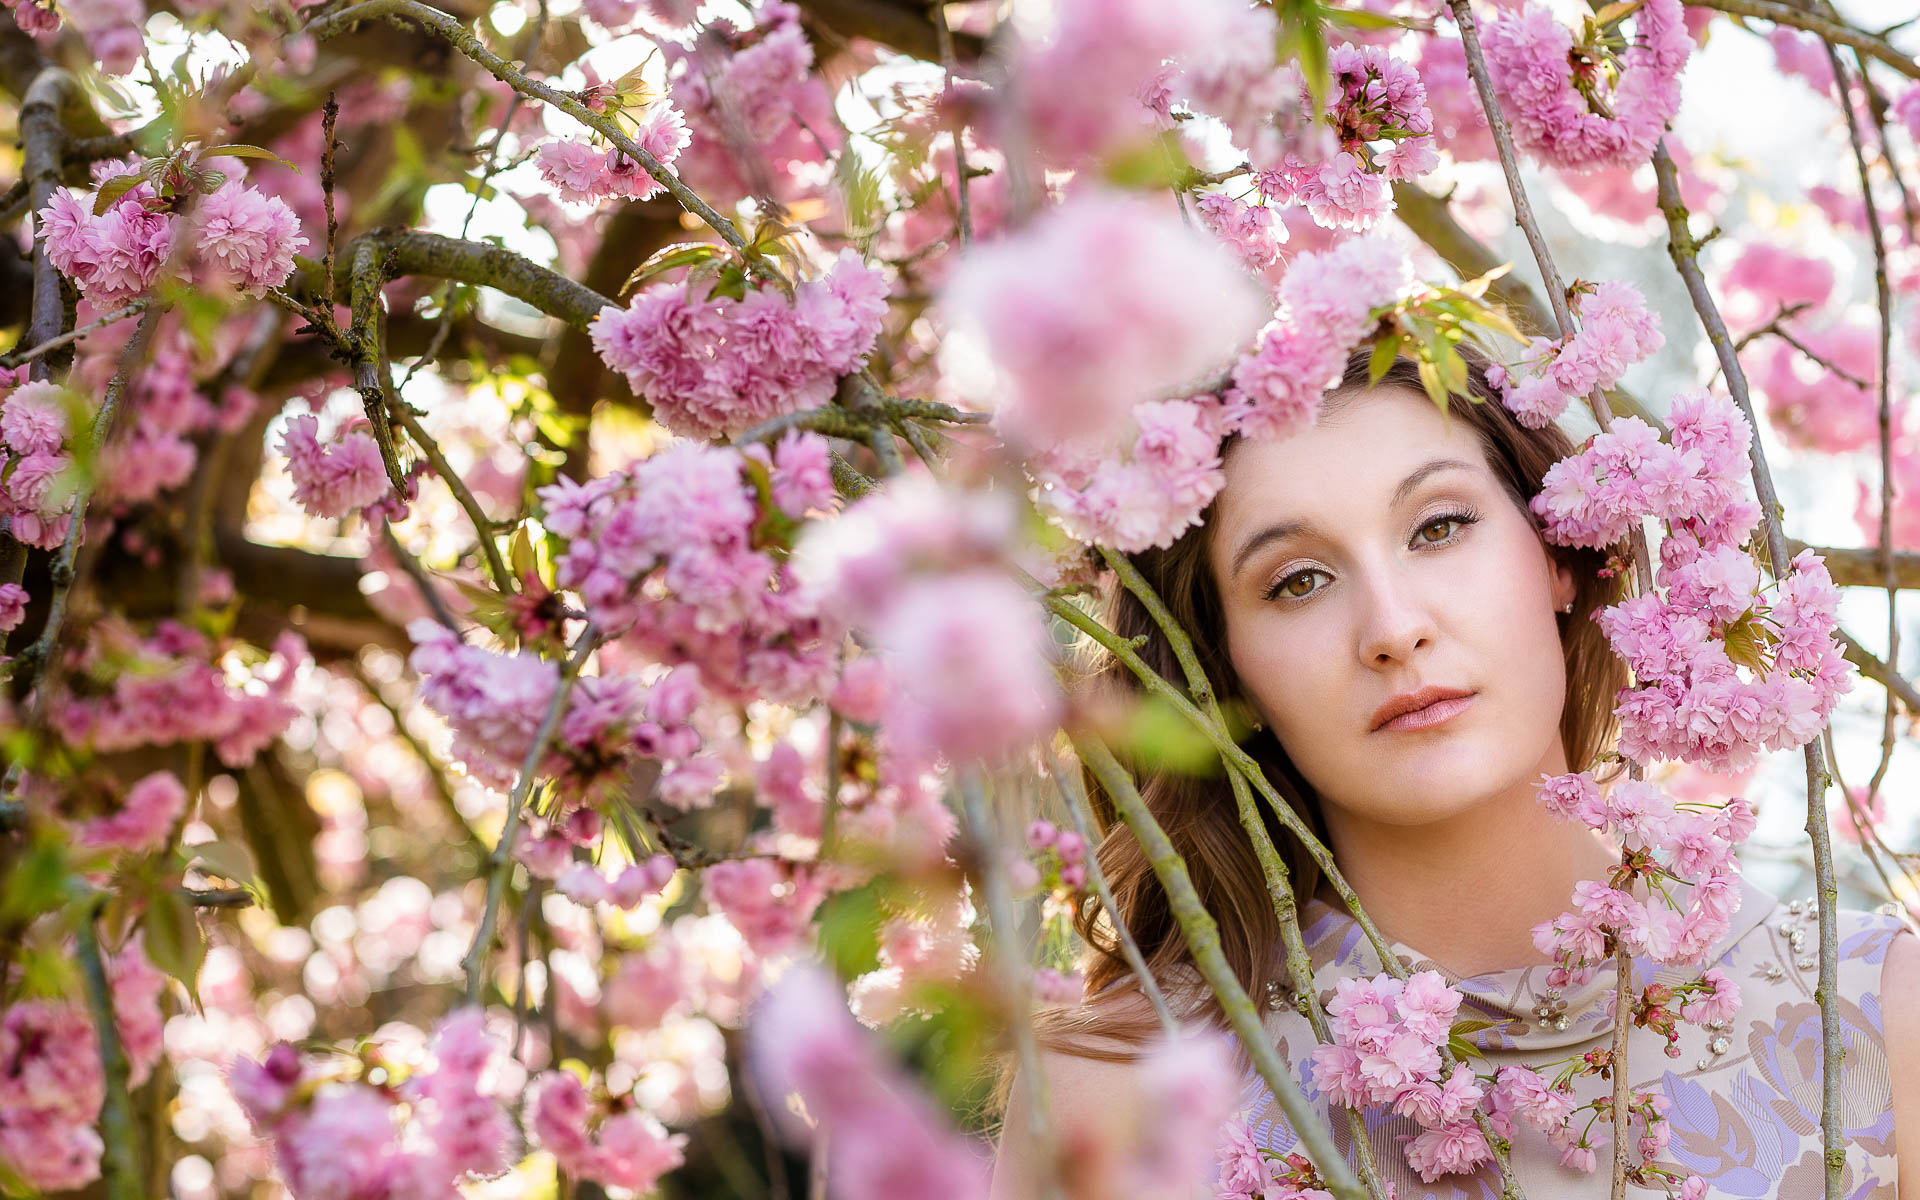 Women portrait amongst flowers